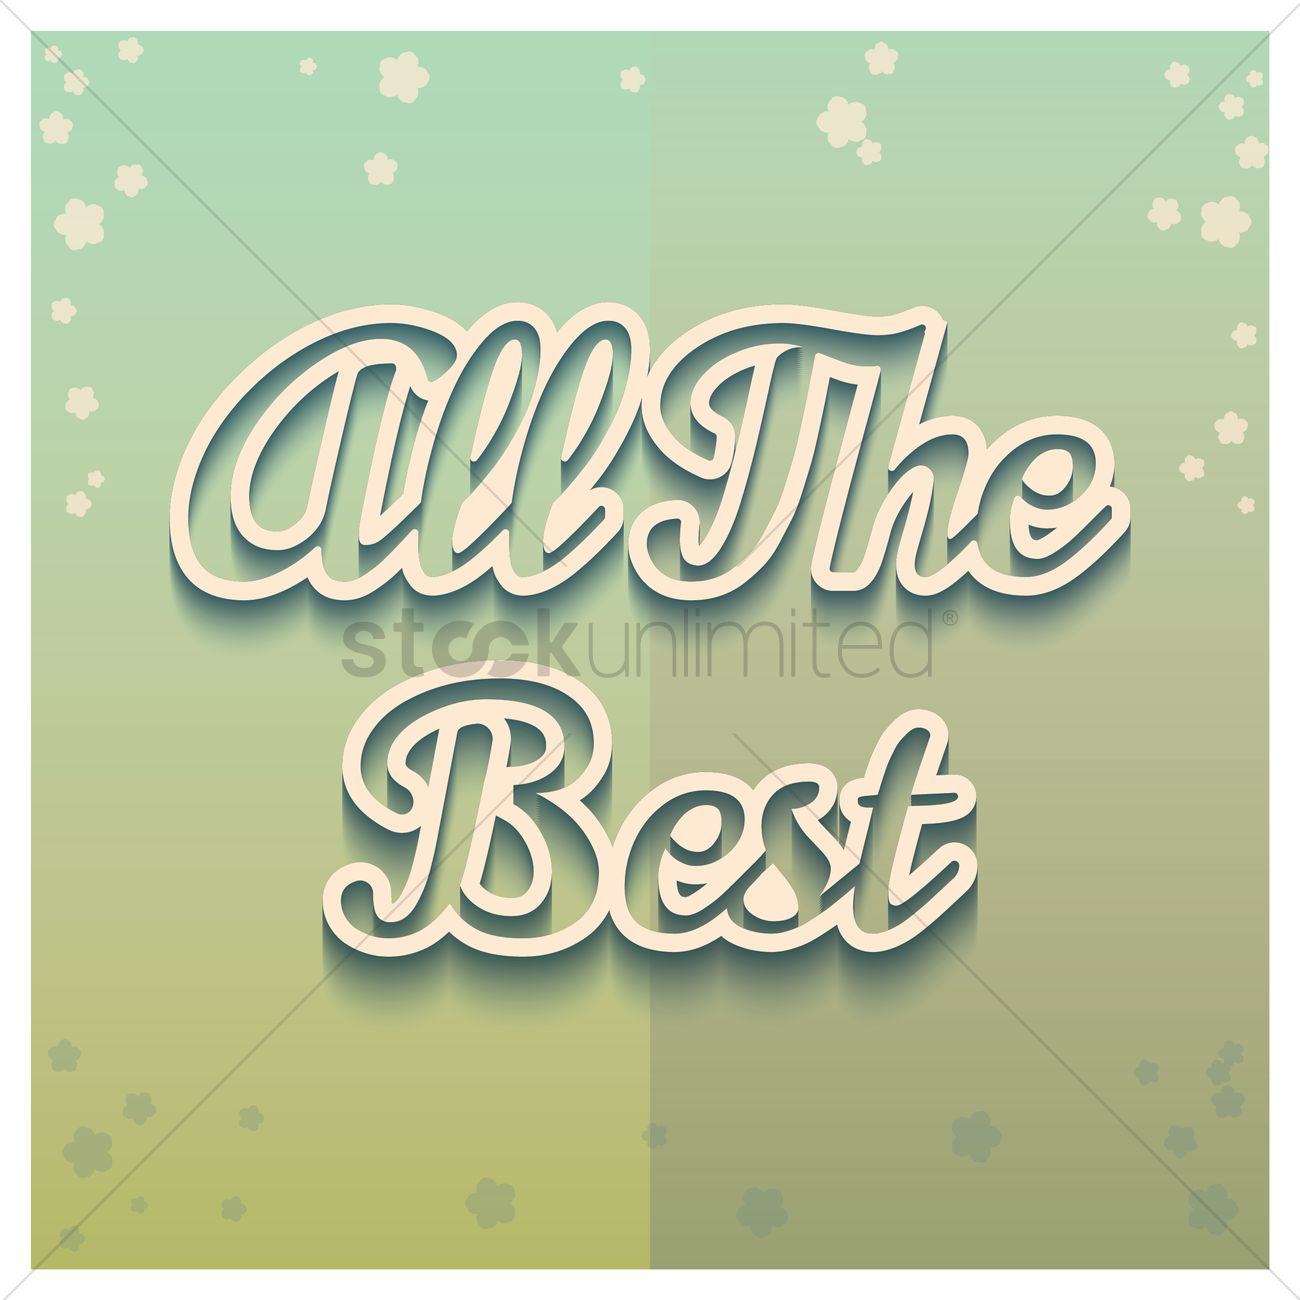 All The Best Greeting Vector Image 1811111 Stockunlimited